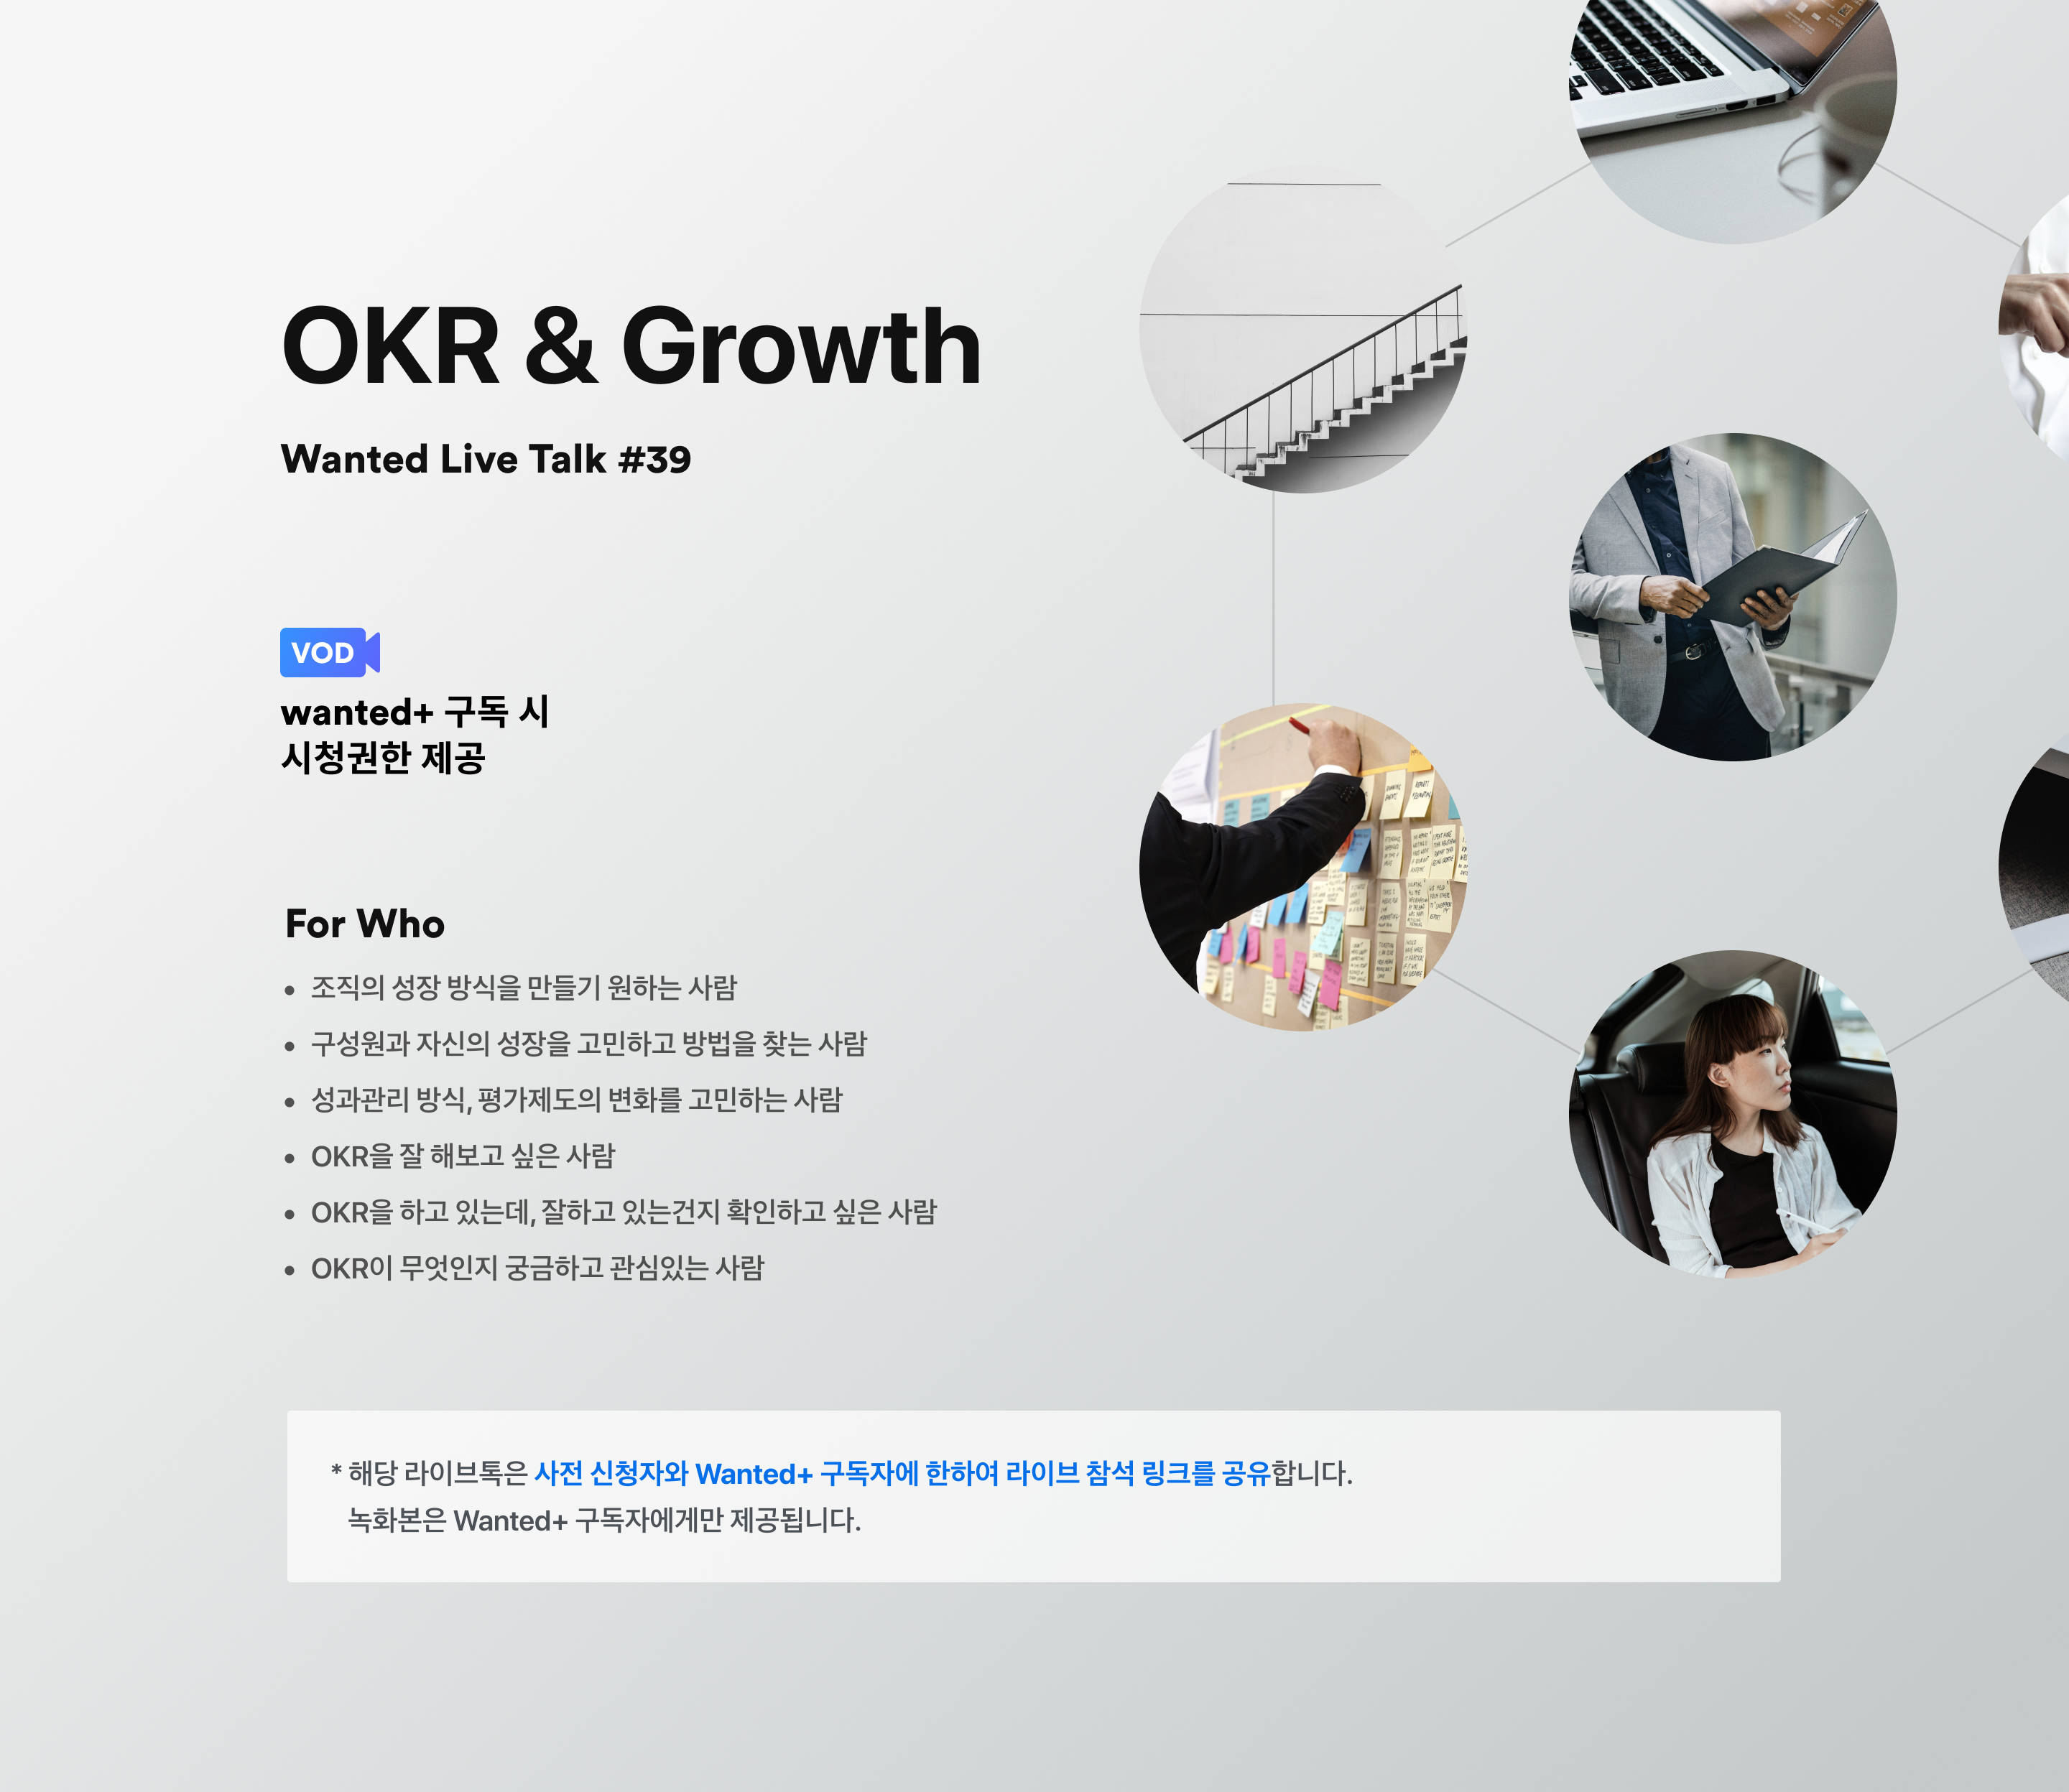 https://static.wanted.co.kr/images/events/1448/6729c0e3.jpg